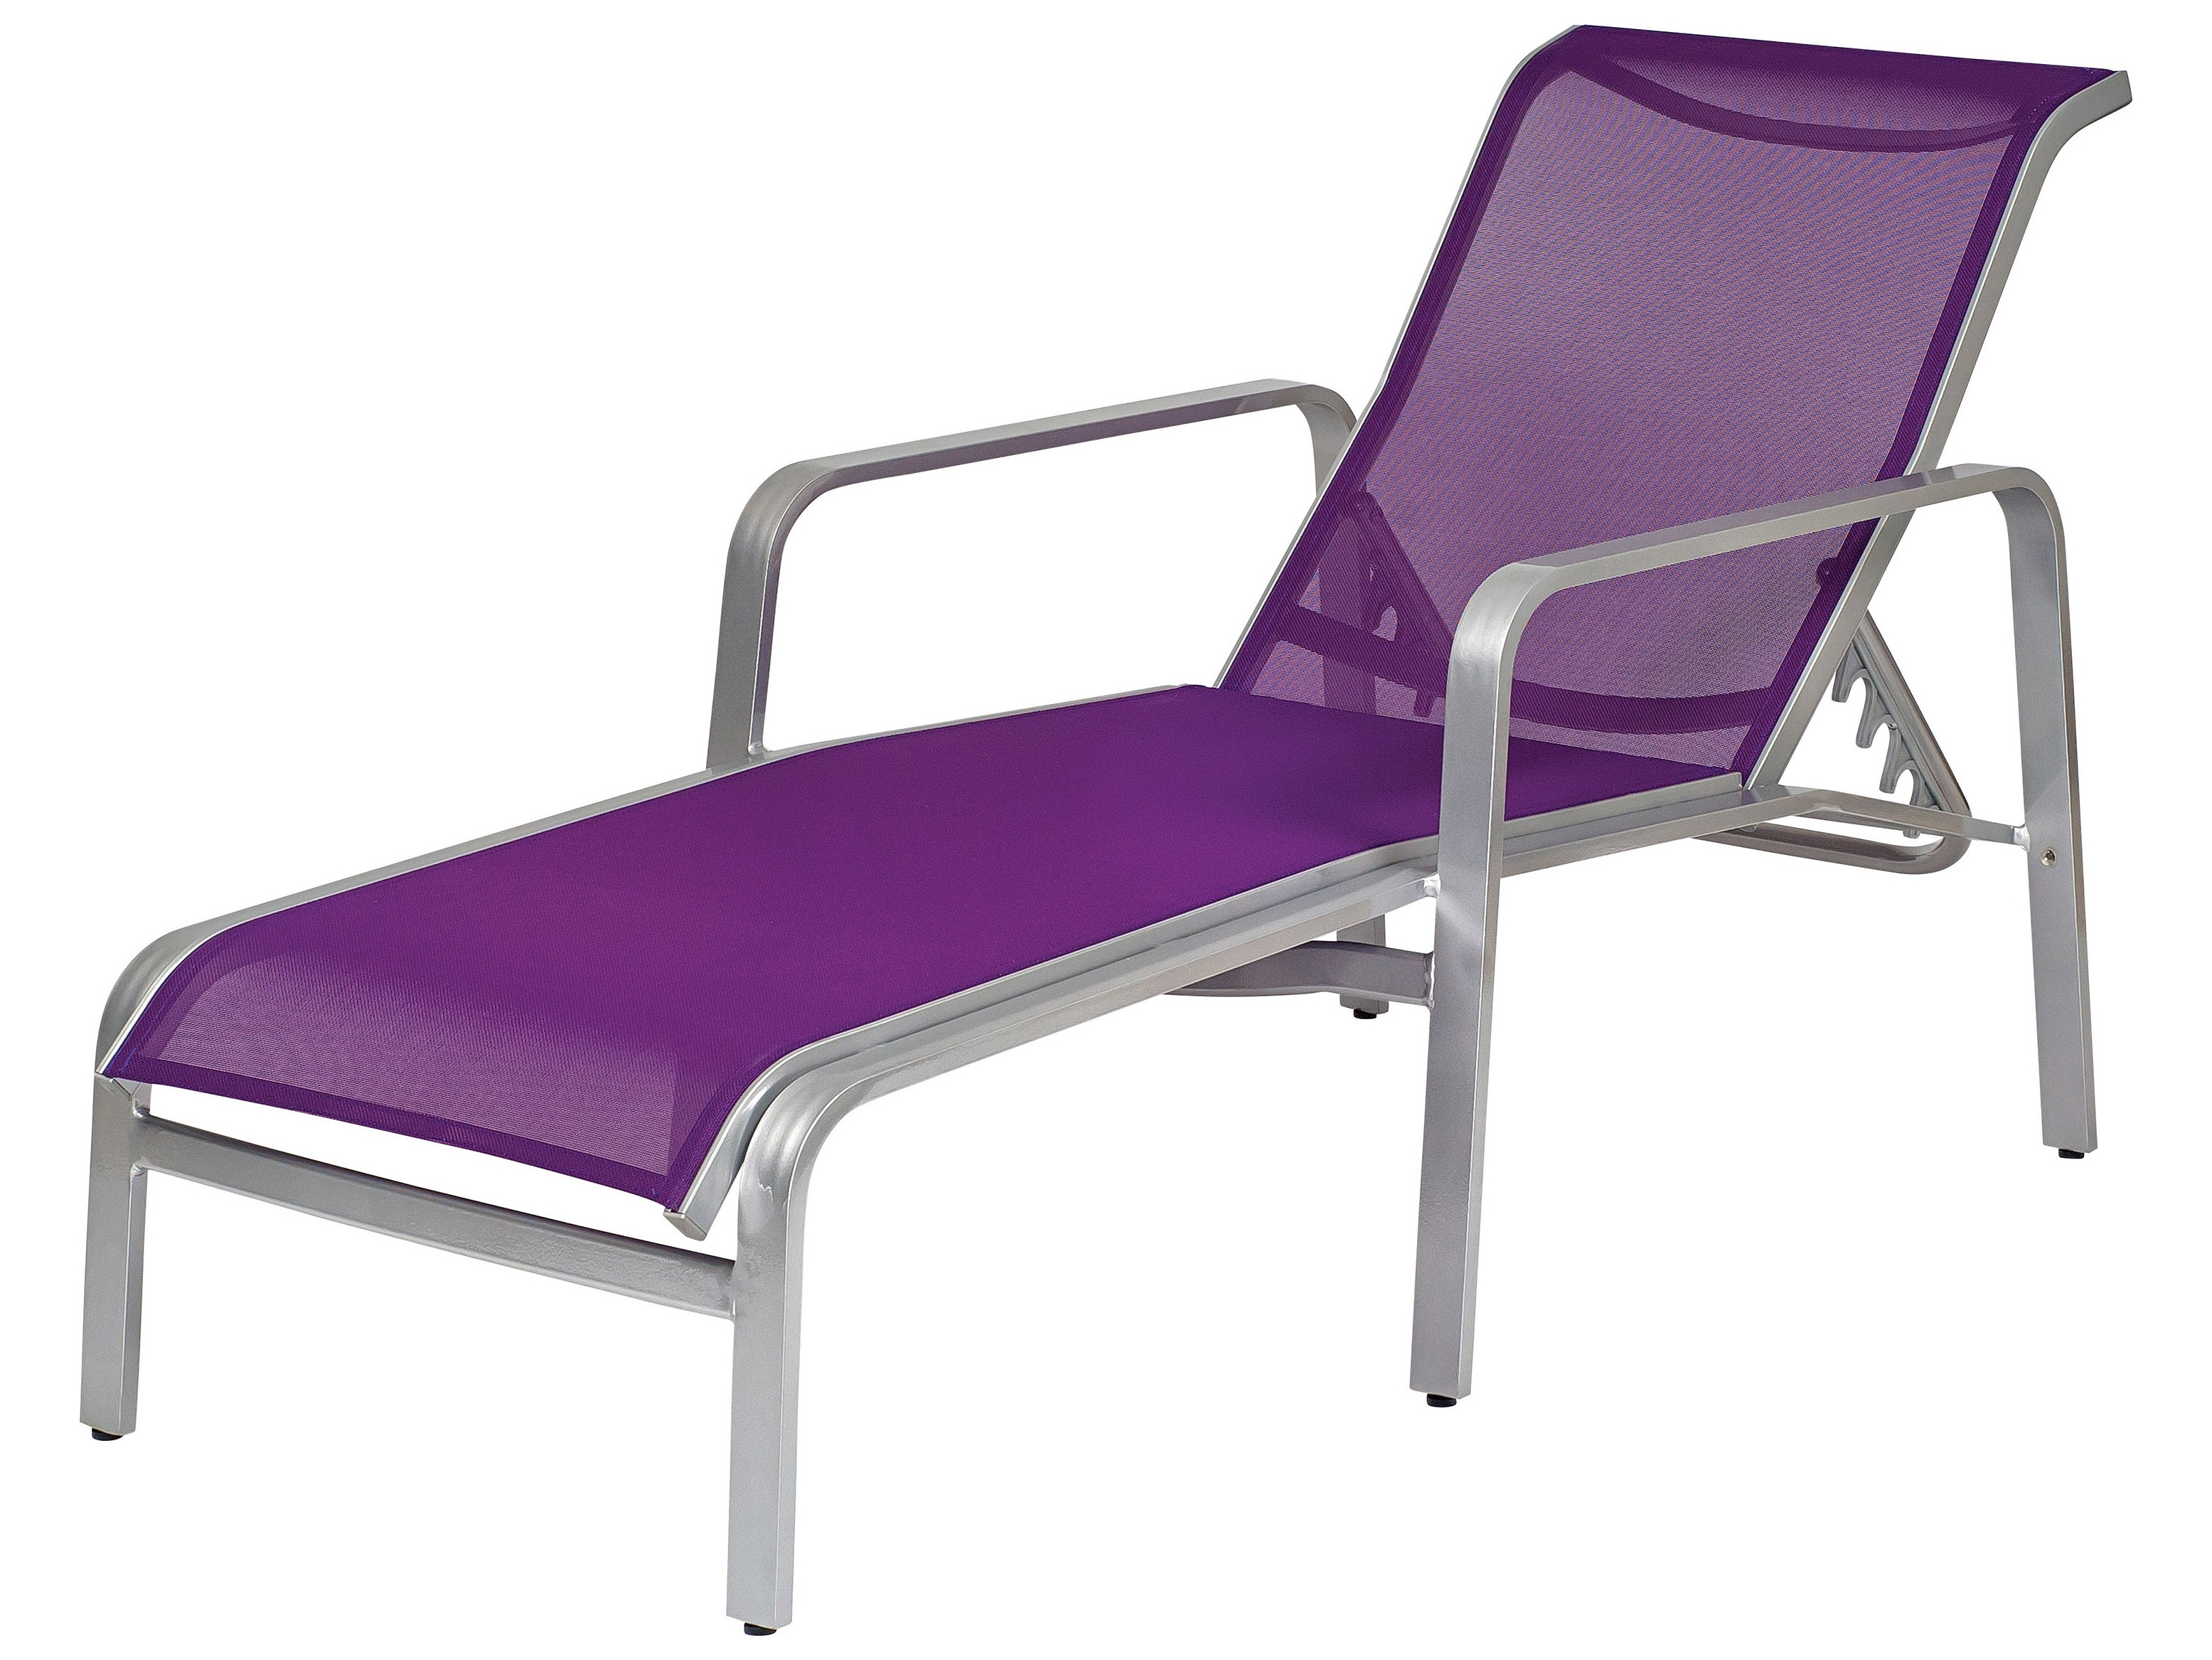 6G0470 In Favorite Purple Chaise Lounges (Gallery 14 of 15)